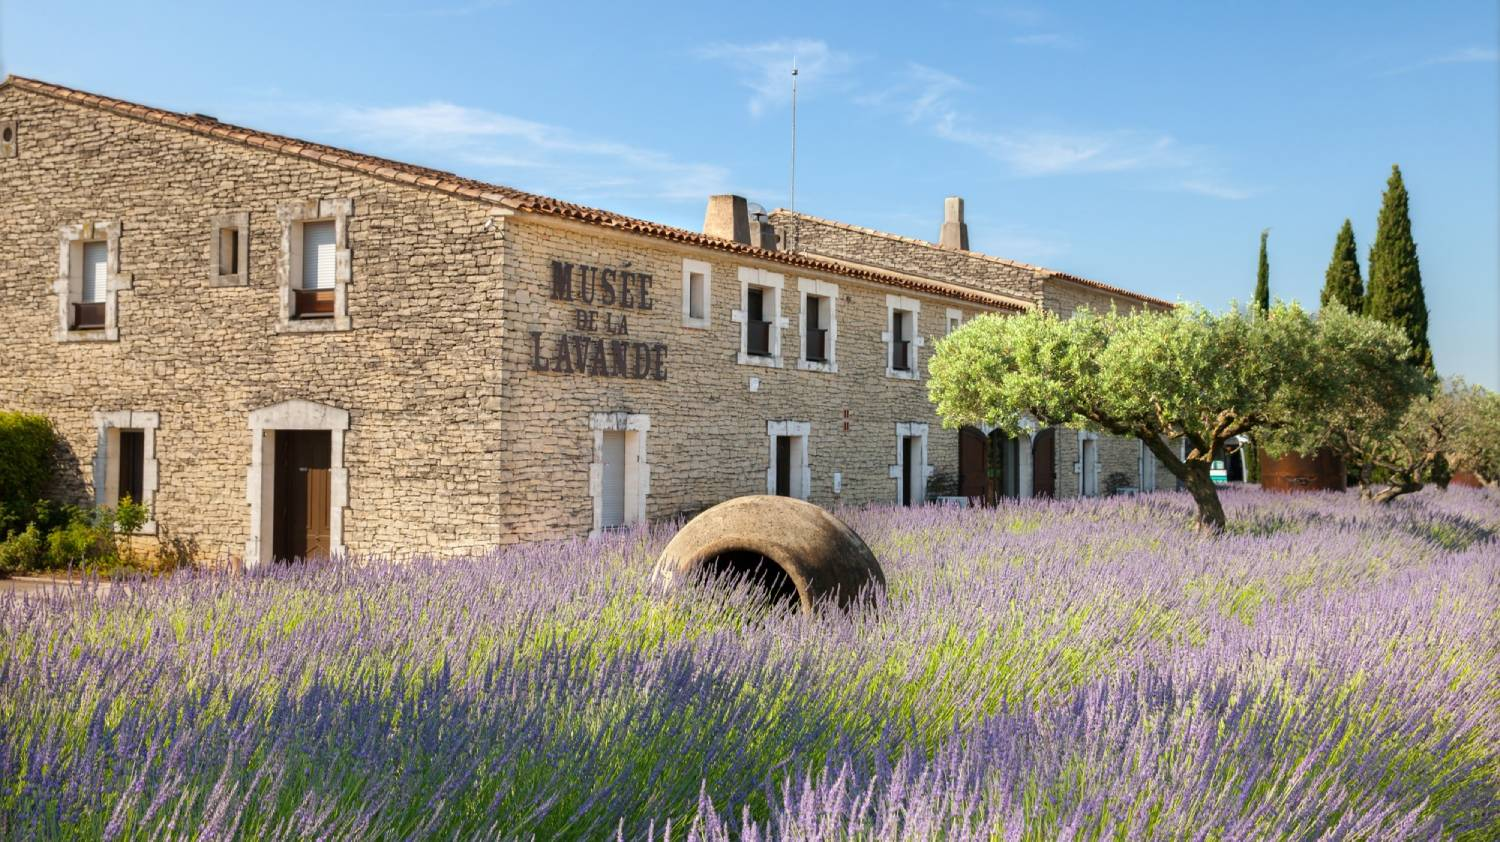 Coustellet Lavender Museum - Things To Do In Avignon